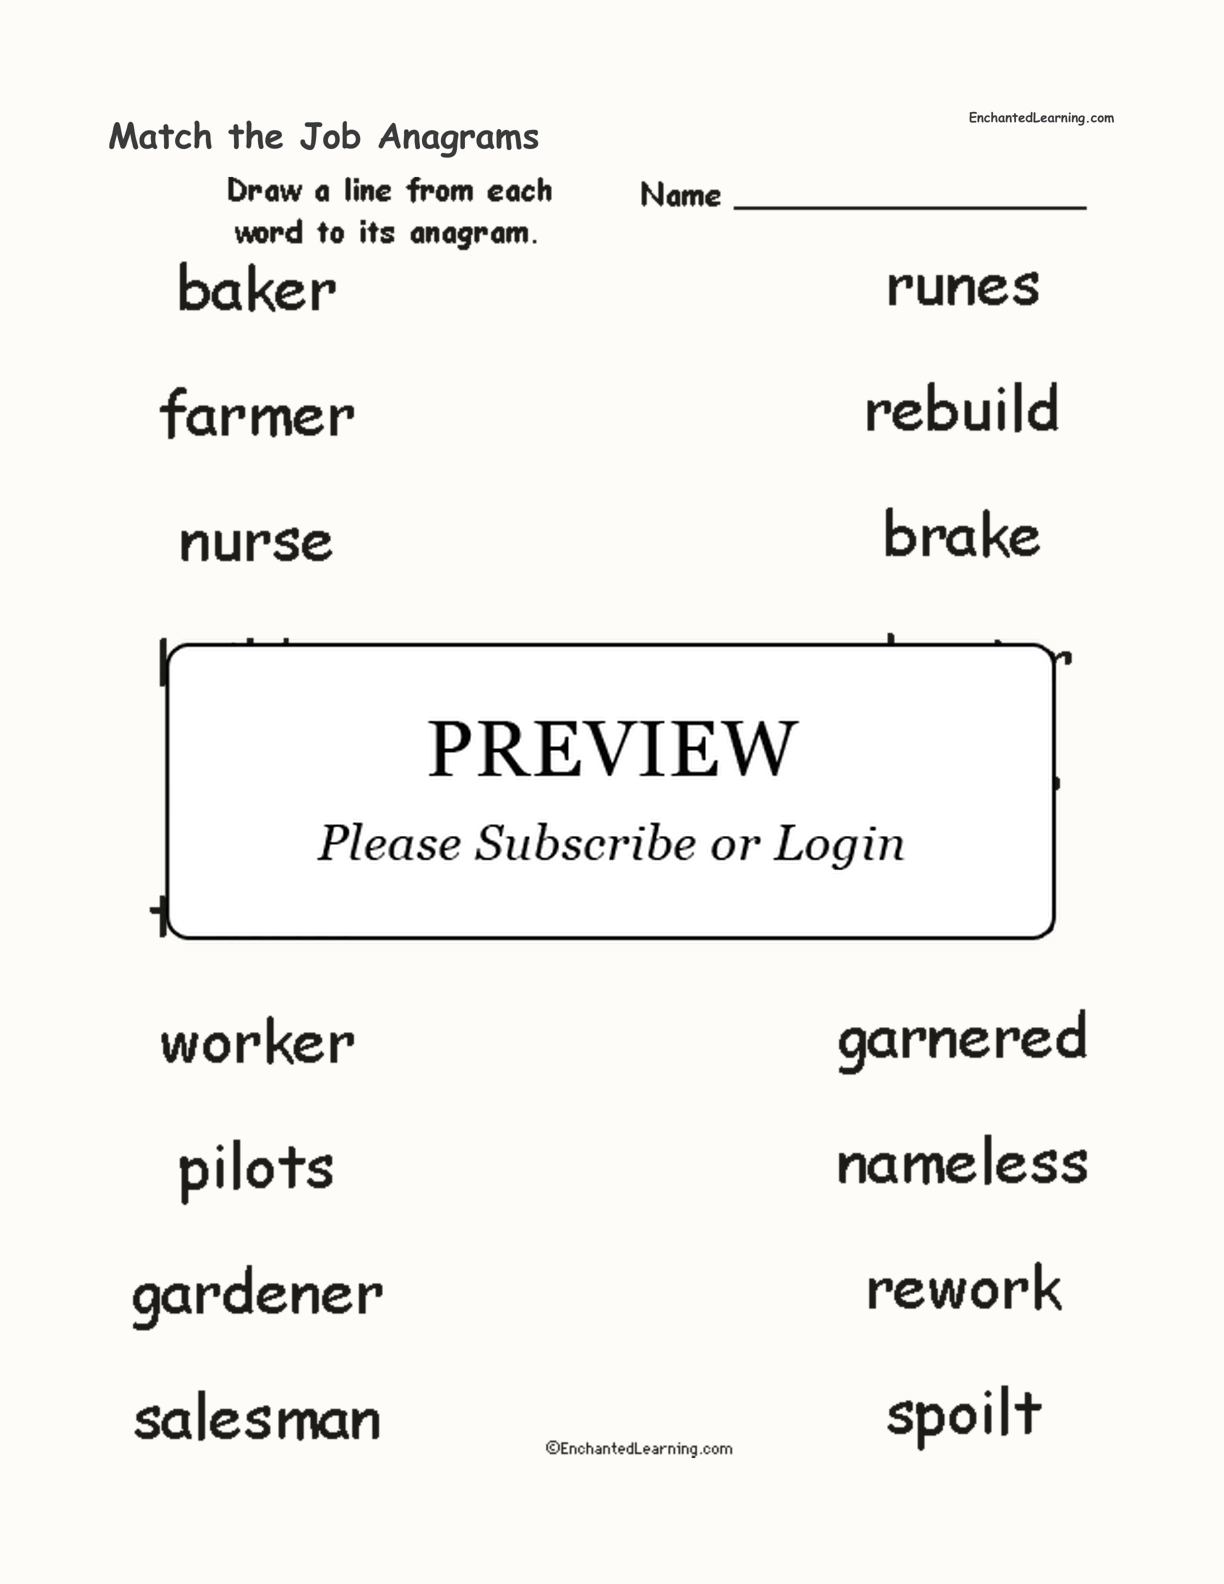 Match the Job Anagrams interactive worksheet page 1